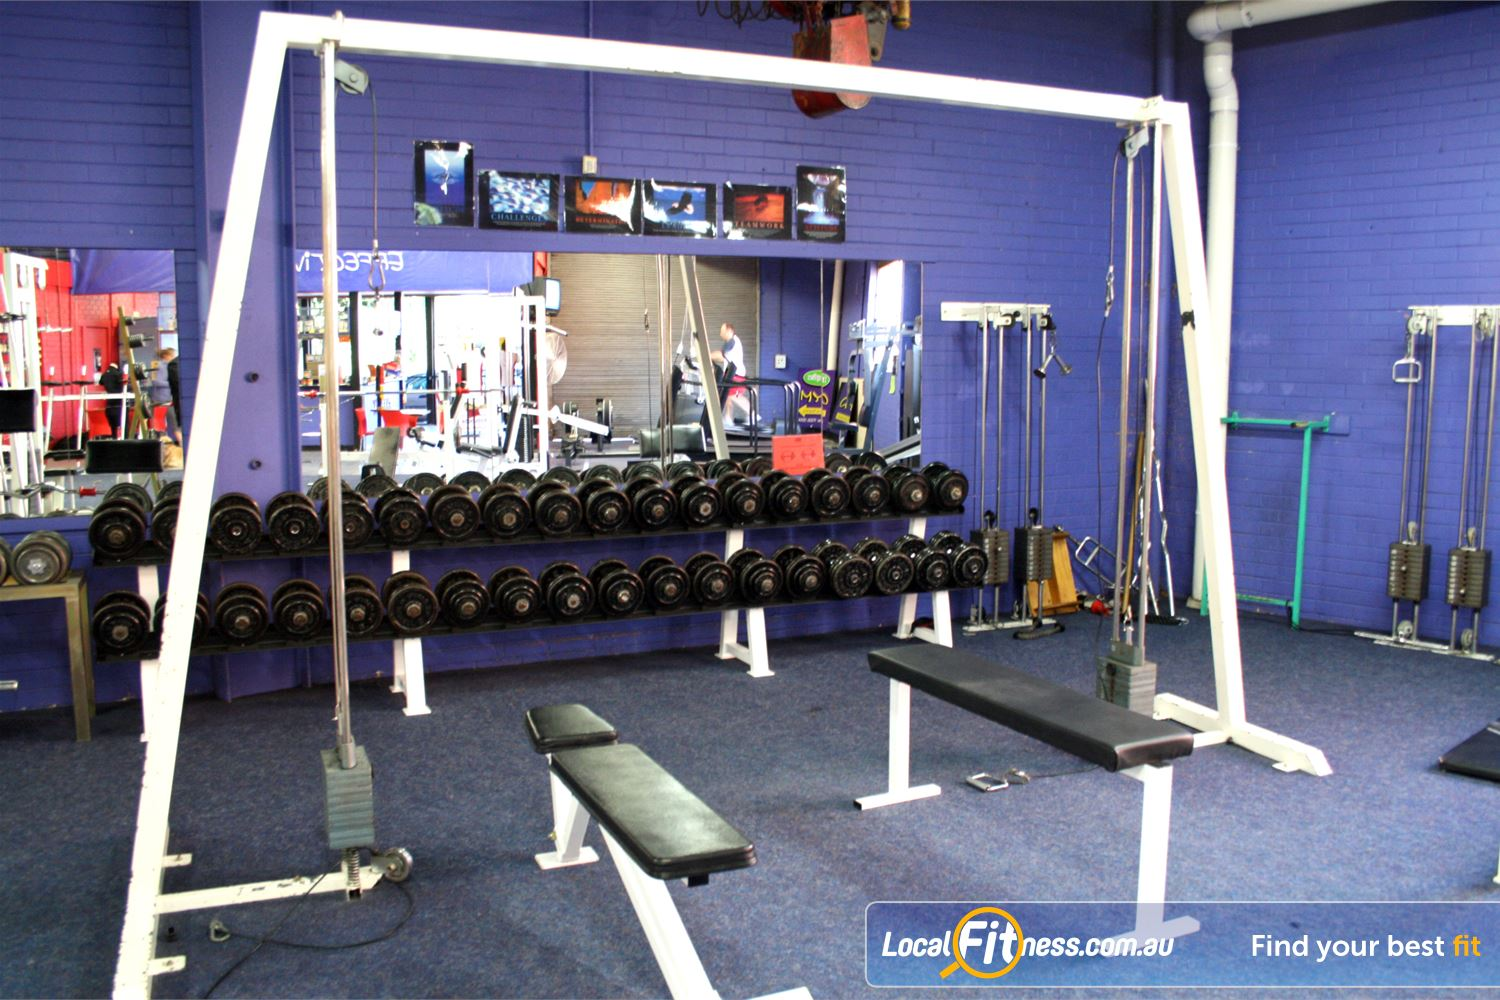 FITafex Gymnasium Near Niddrie Our popular cable cross-over machines, benches and dumbbells sets.